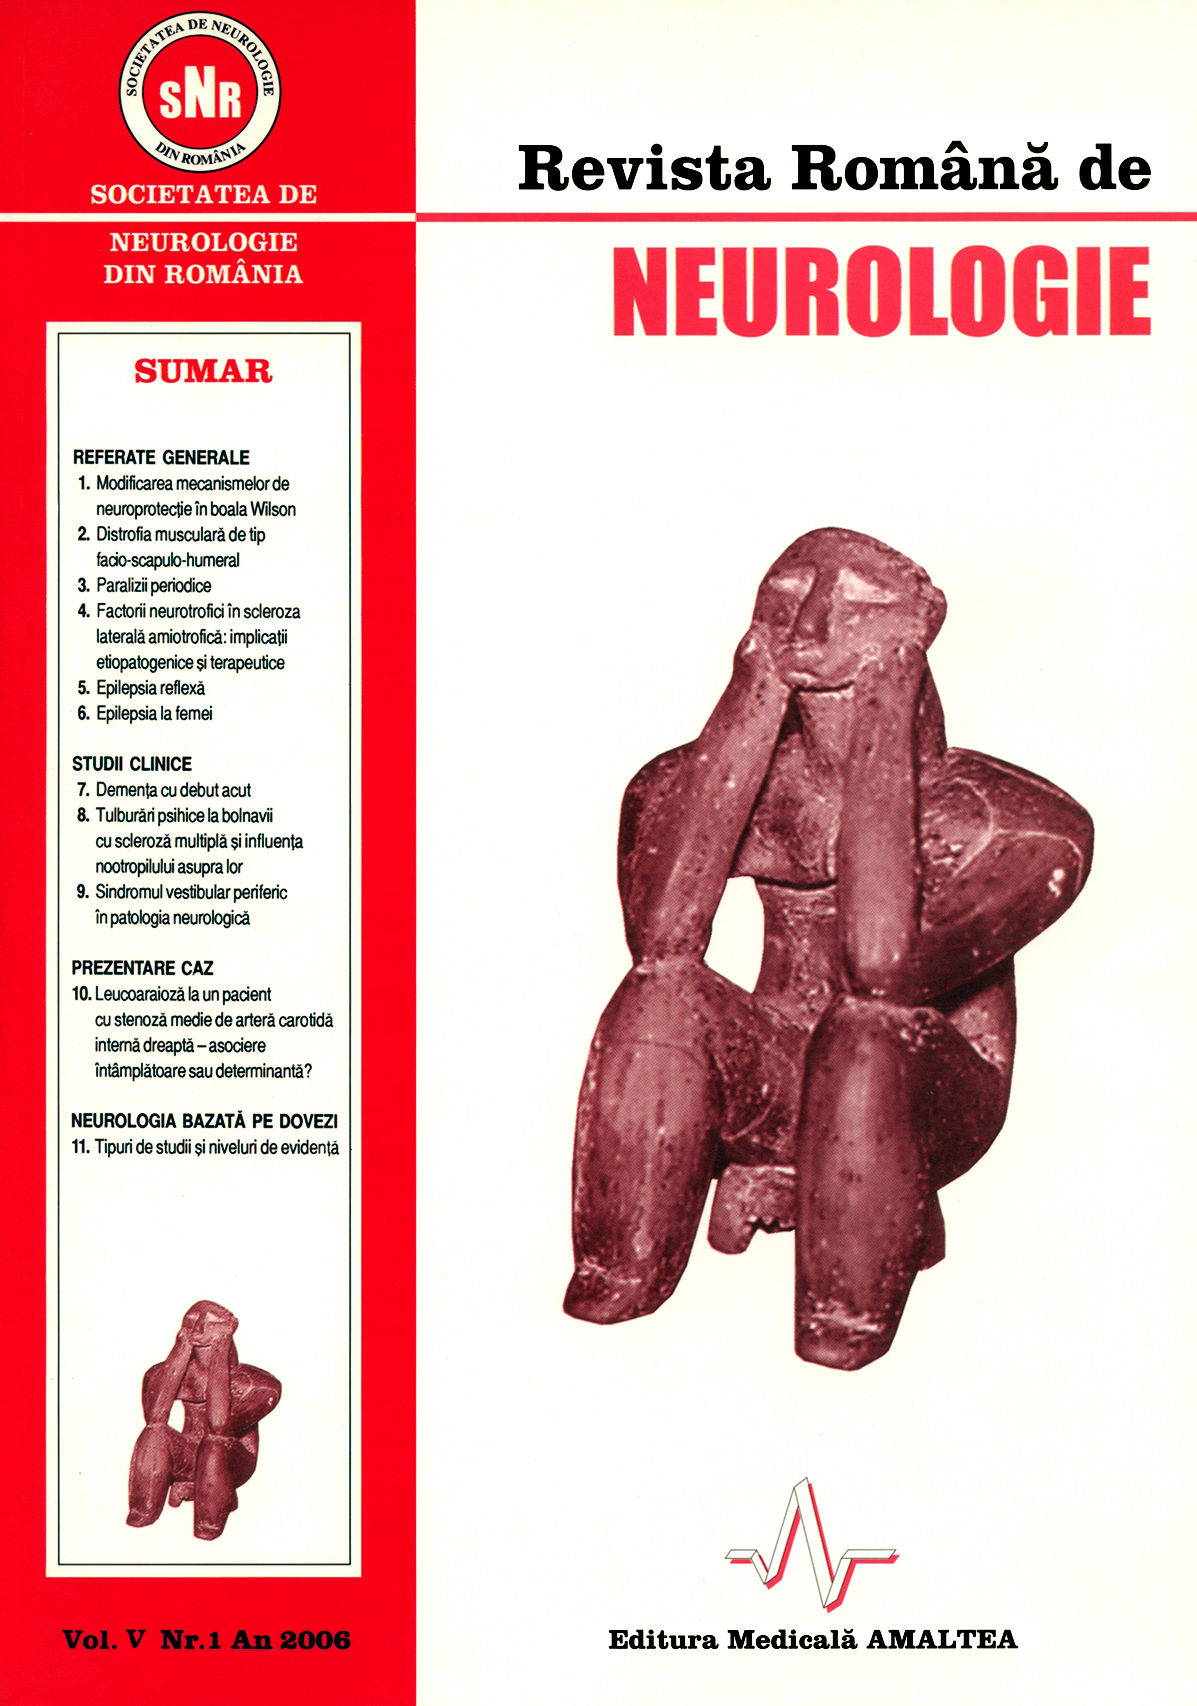 Romanian Journal of Neurology, Volume V, No. 1, 2006